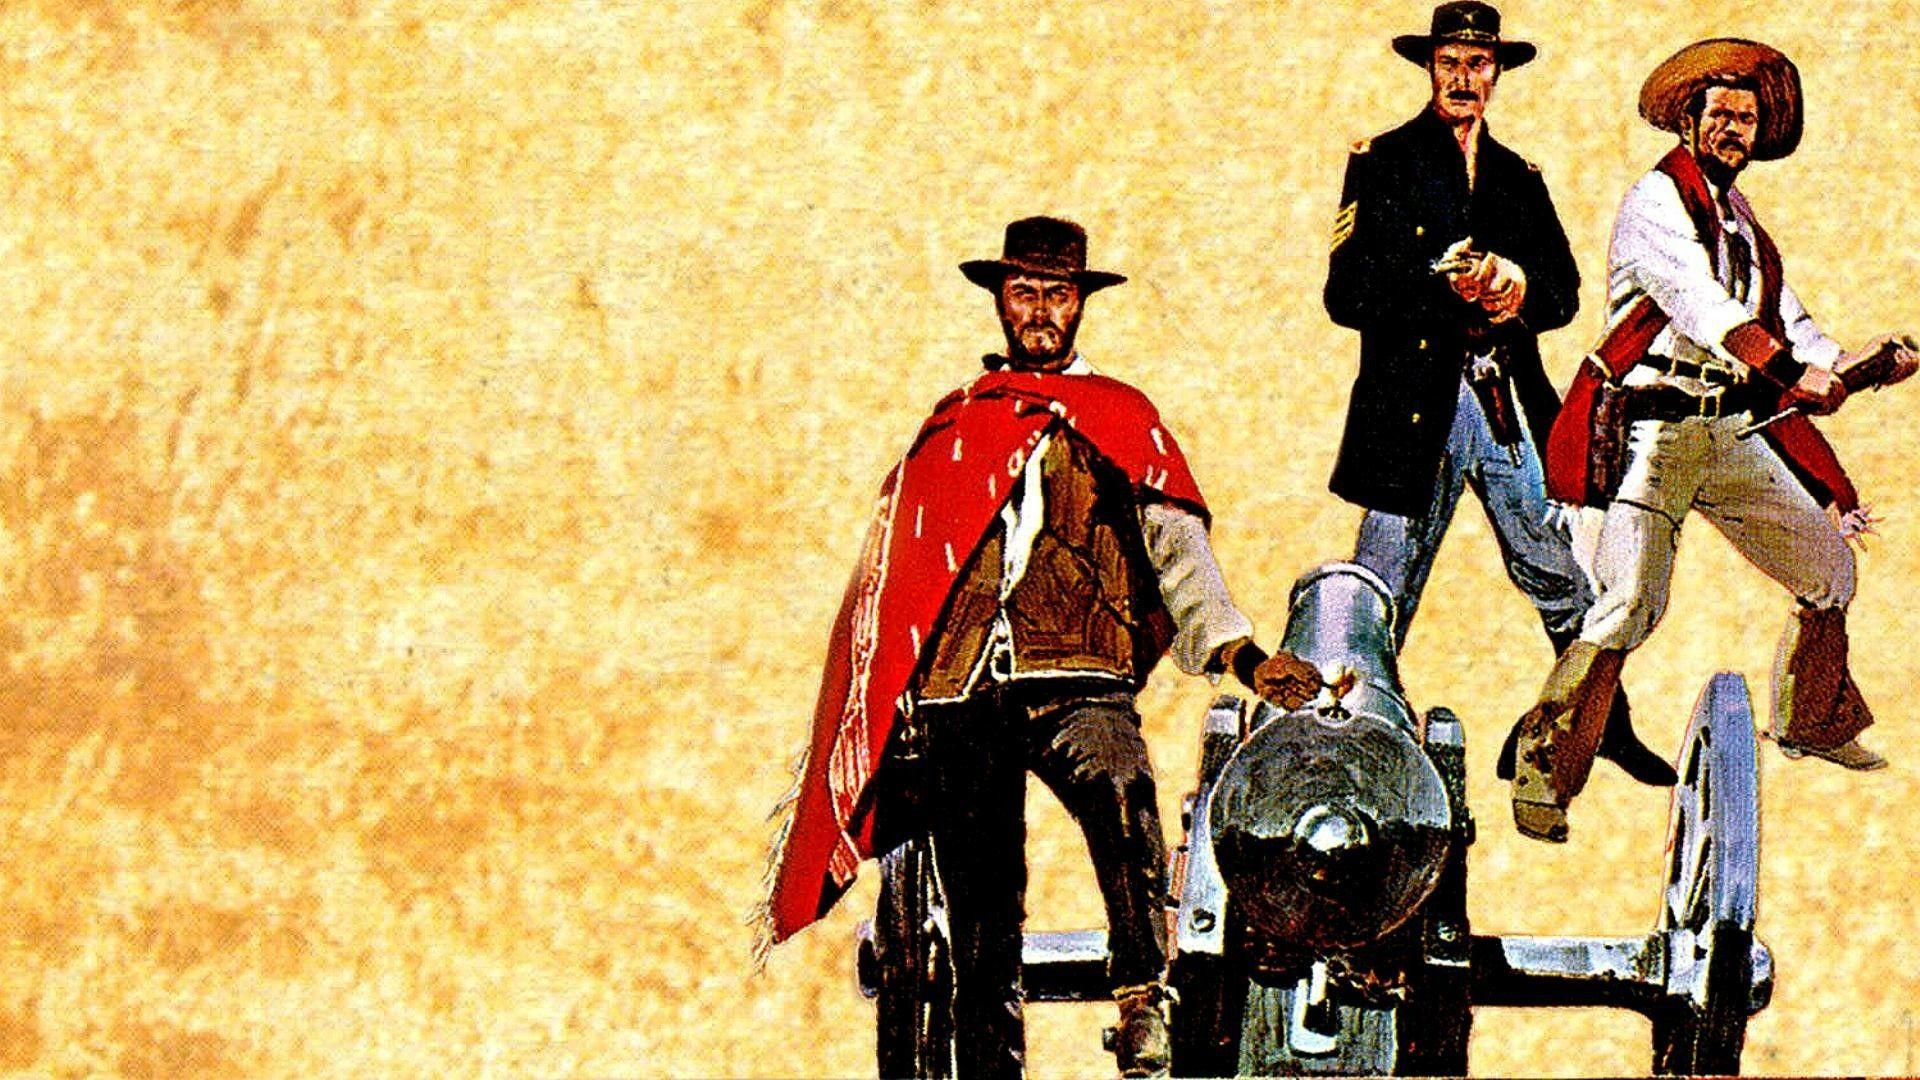 THE GOOD THE BAD AND THE UGLY western t wallpapers